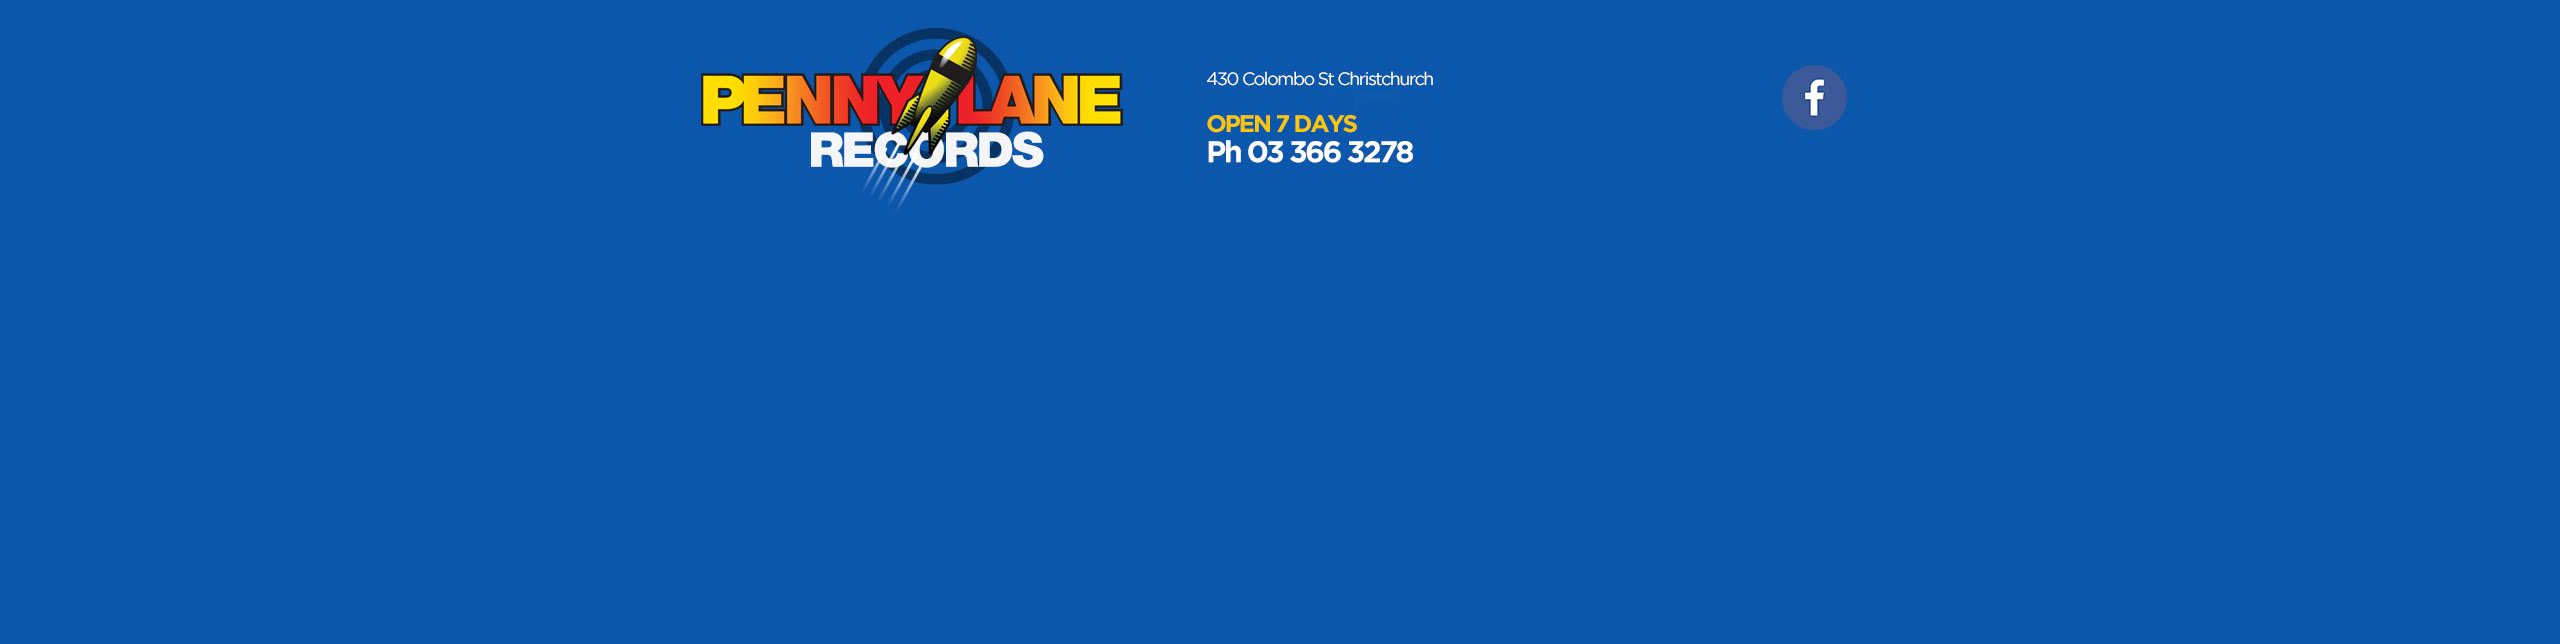 we are buying right now ELVIS PRESLEY, LITTLE RICHARD , GENE VINCENT , BUDDY HOLLY , CHUCK BERRY, JERRY LEE LEWIS, HANK WILLIAMS, RITCHIE VALENS, CARL PERKINS,  DION AND BELMONTS, FRANKIE LYMON, THE PENGUINS , THE CRESTS , BUDDY KNOX, CHUCK WILLIS , JOHNNY BURNETTE TRIO, BEATLES, ROLLING STONES, BOB